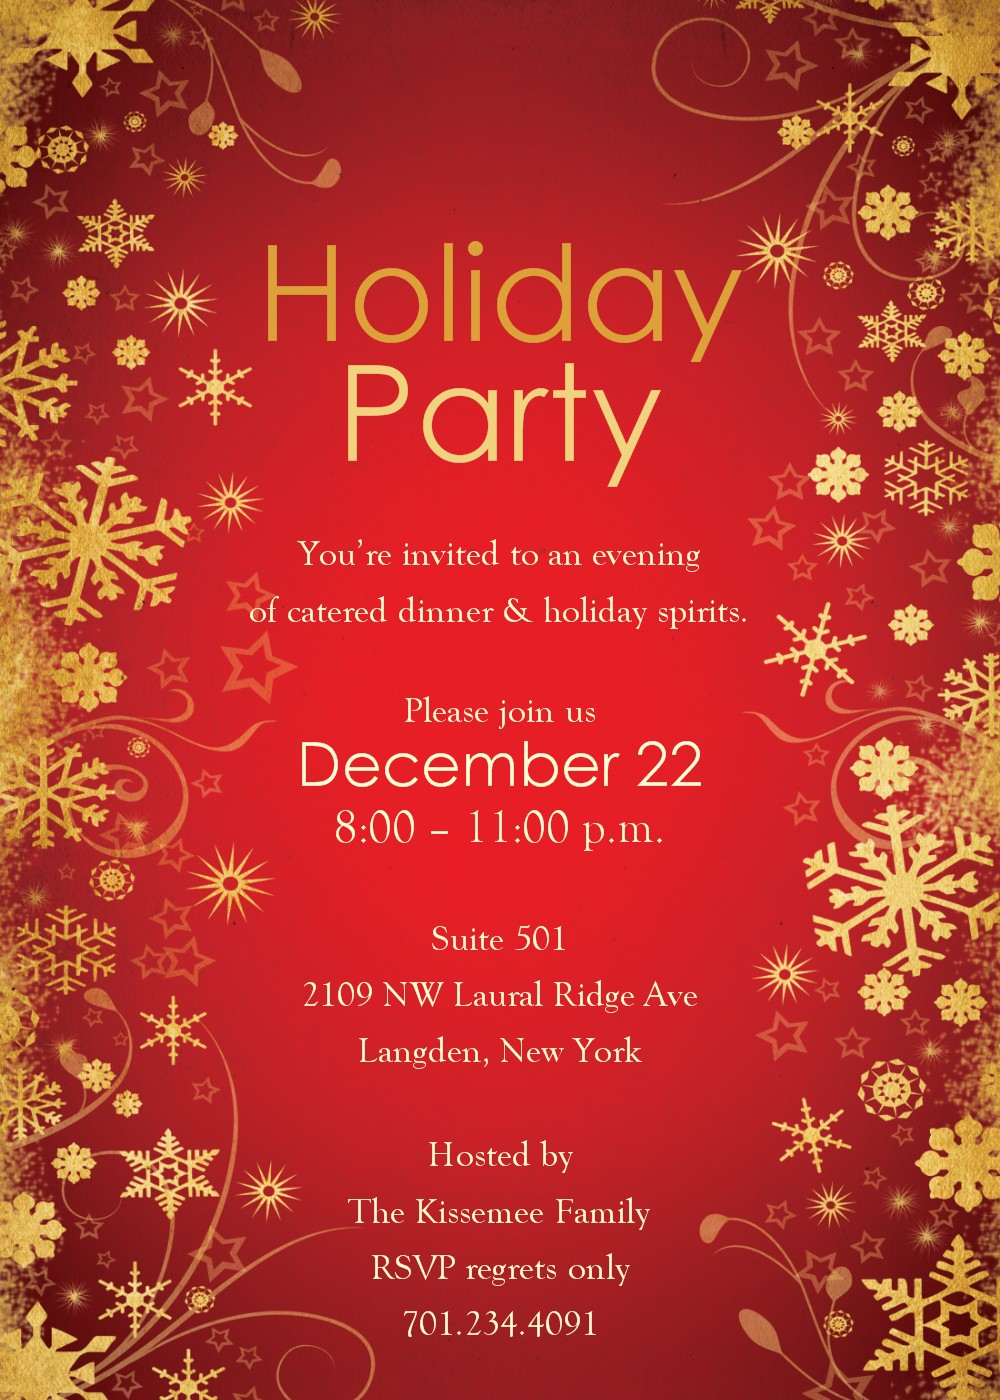 Christmas Invite Template Free Venturecapitalupdatecom - Dinner party invitation templates free download